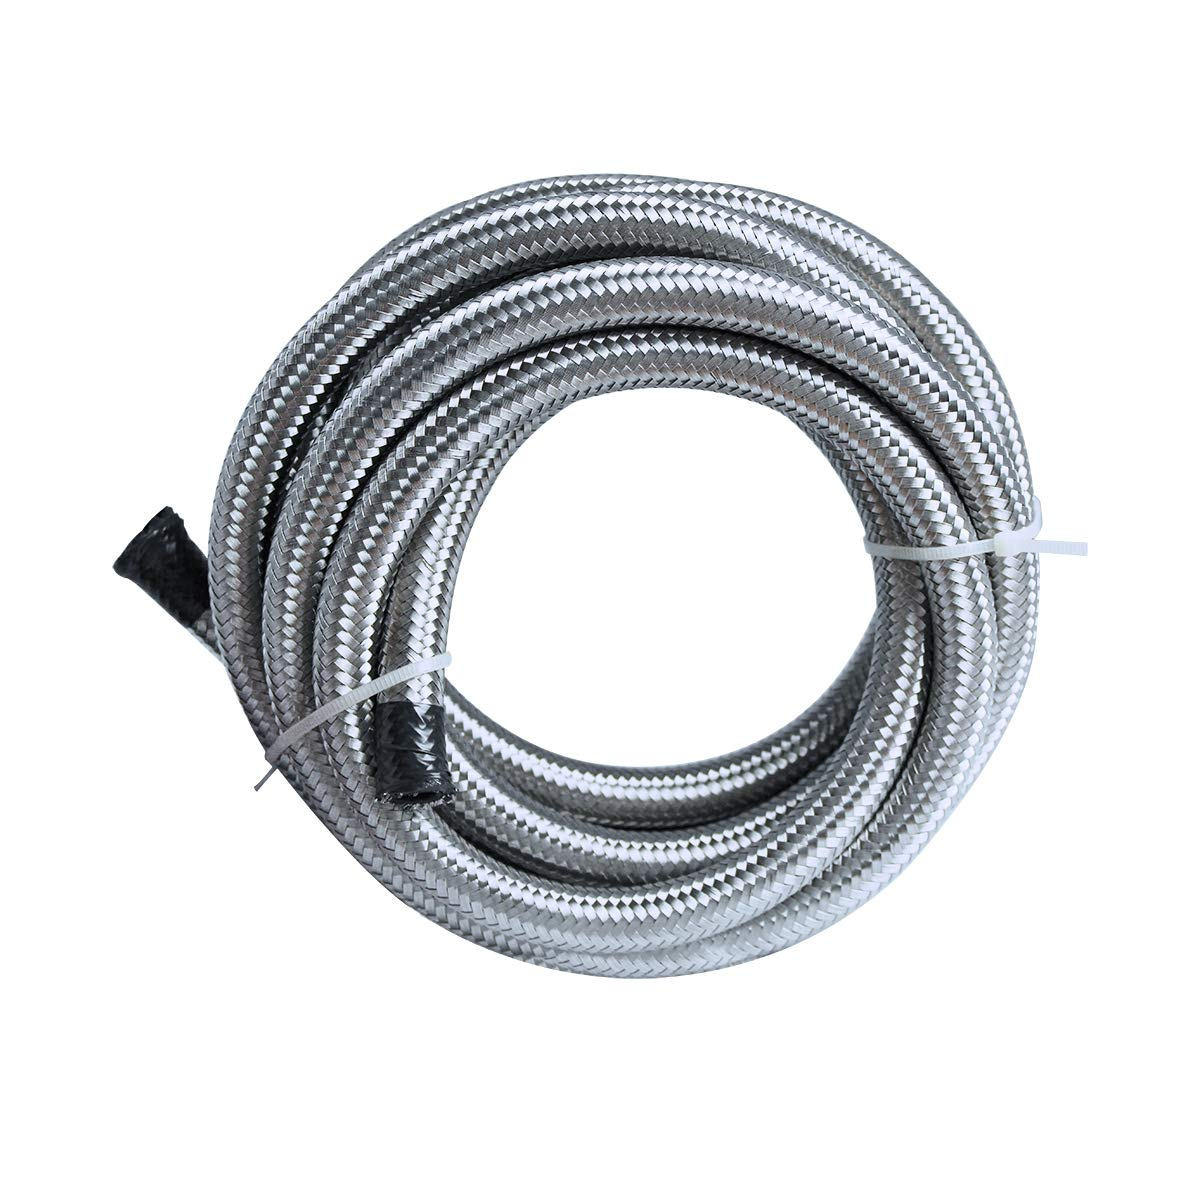 "10 Ft 6AN Fuel Hose AN6 3/8"" Universal Braided Stainless Steel CPE Oil Fuel Gas Line Hose 71FN9Vt3ntL"